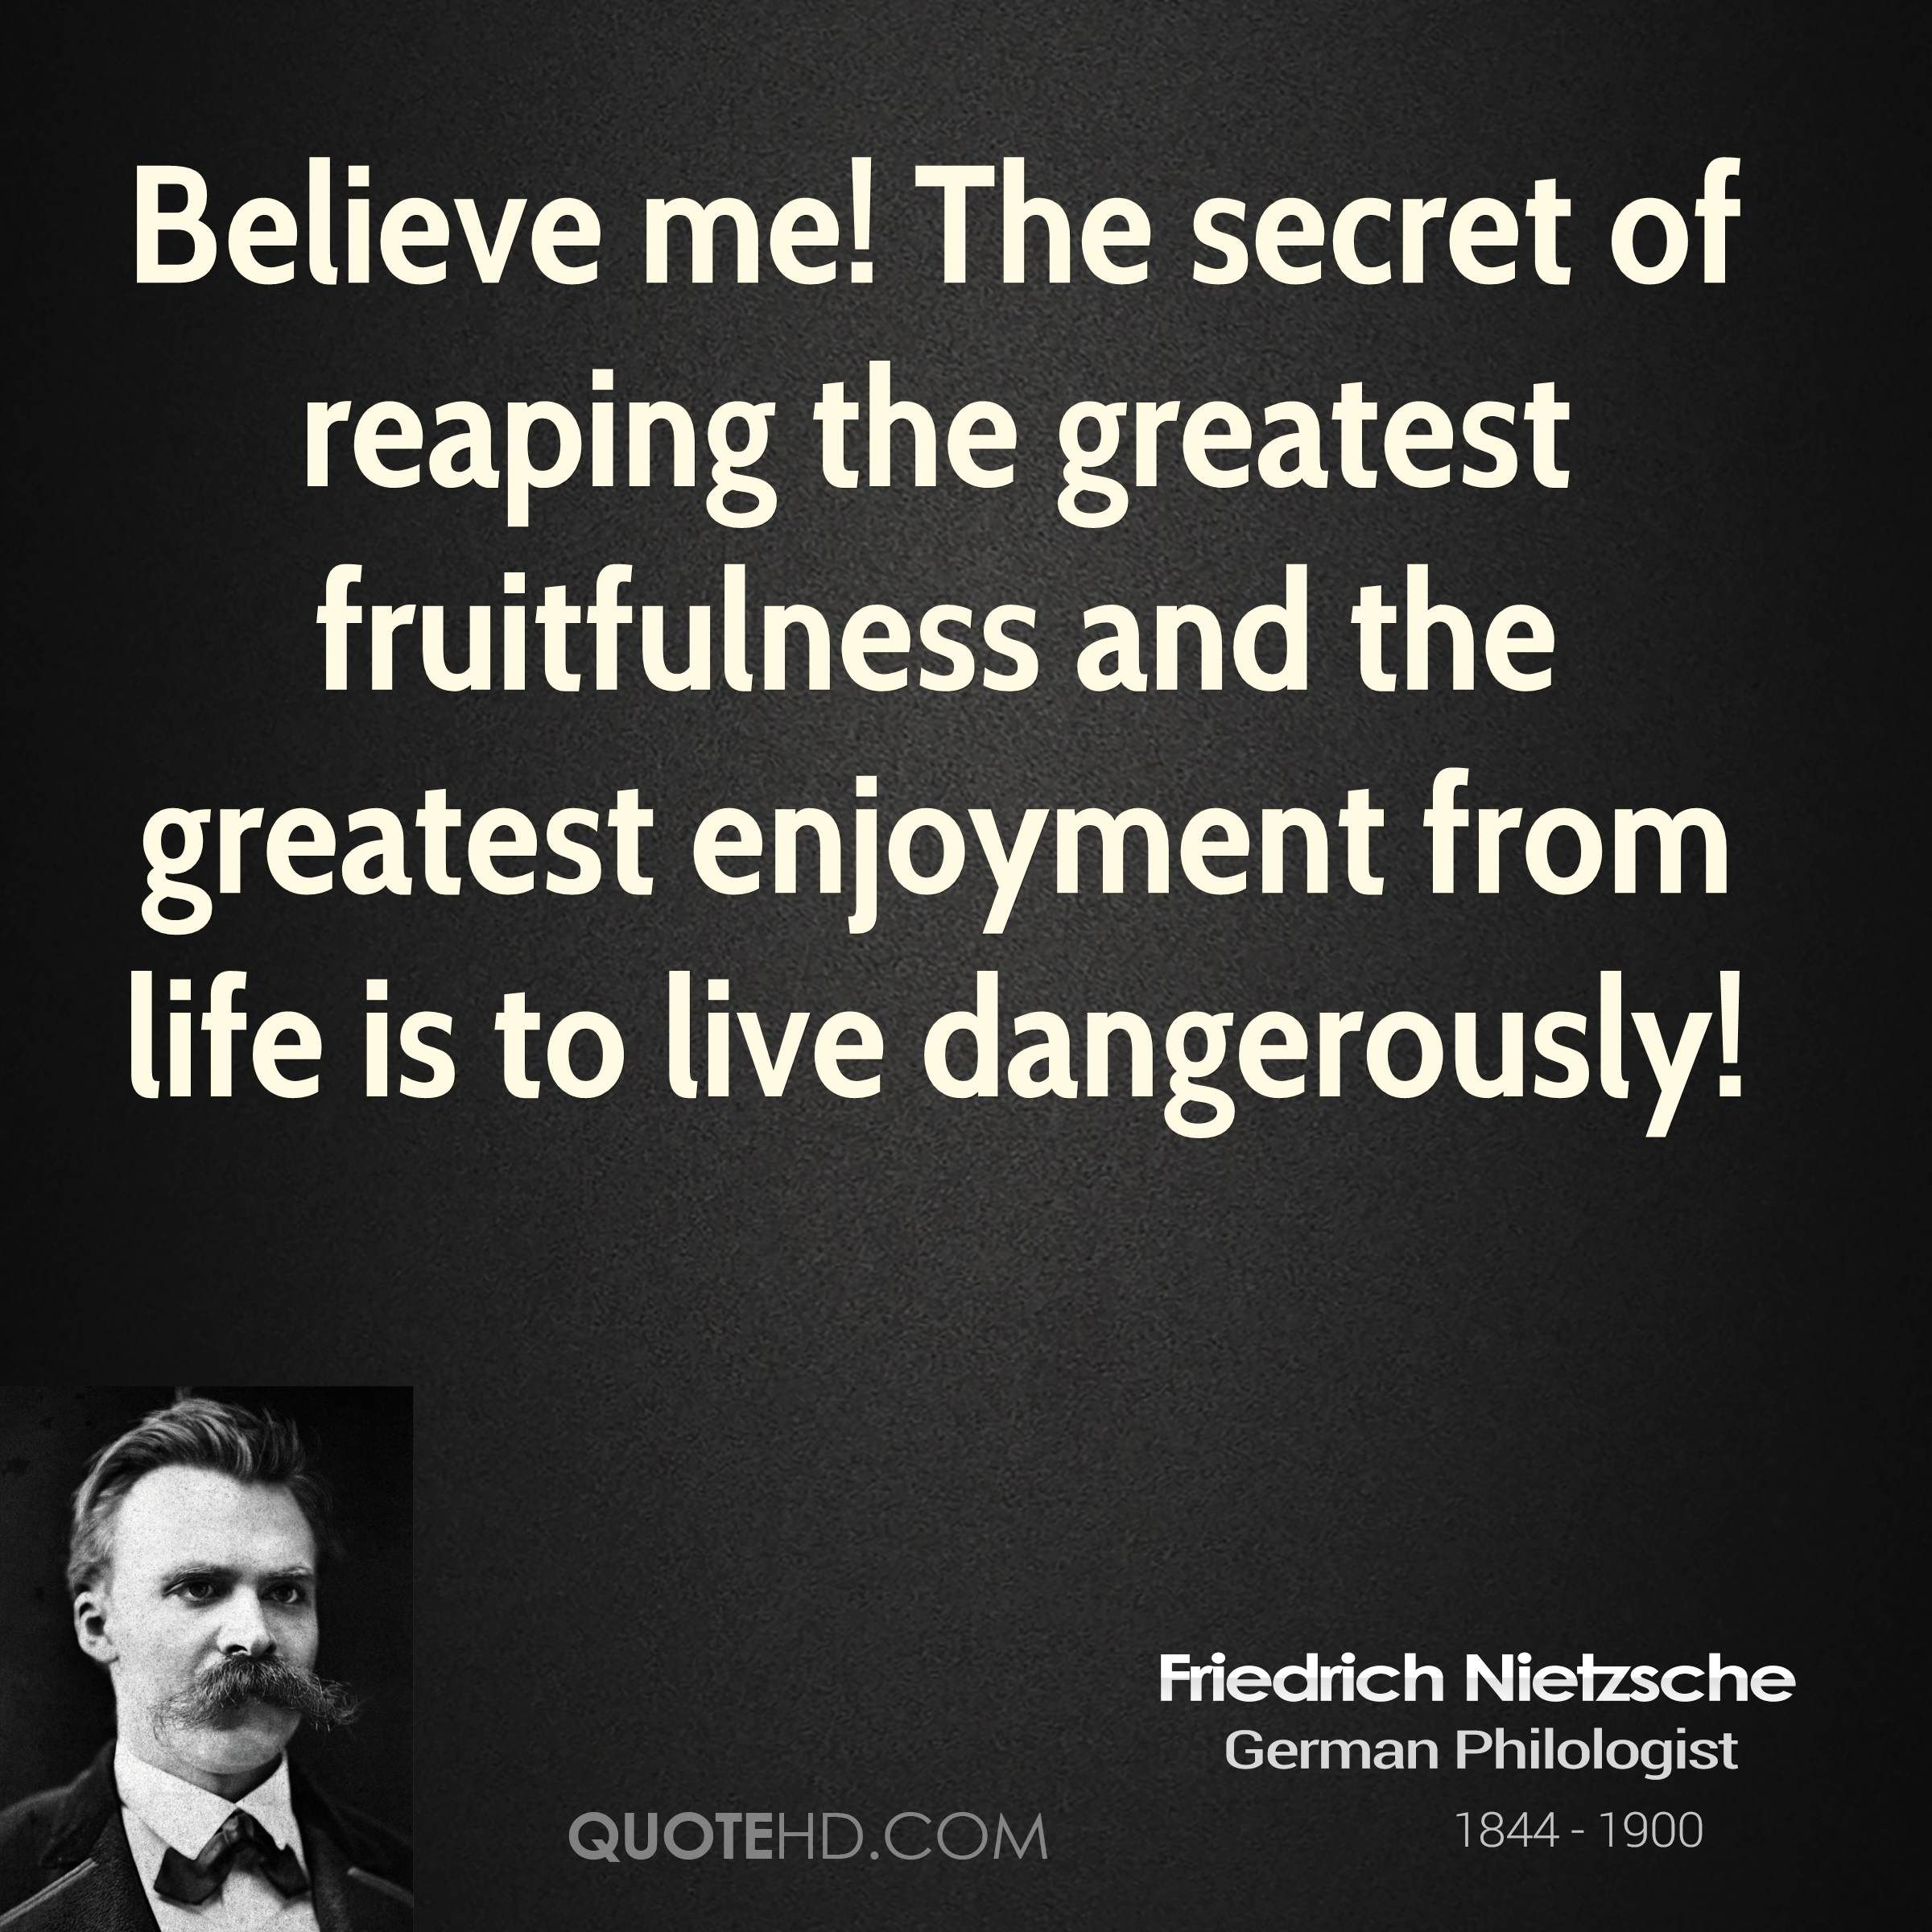 The Life & Philosophy of Friedrich Nietzsche